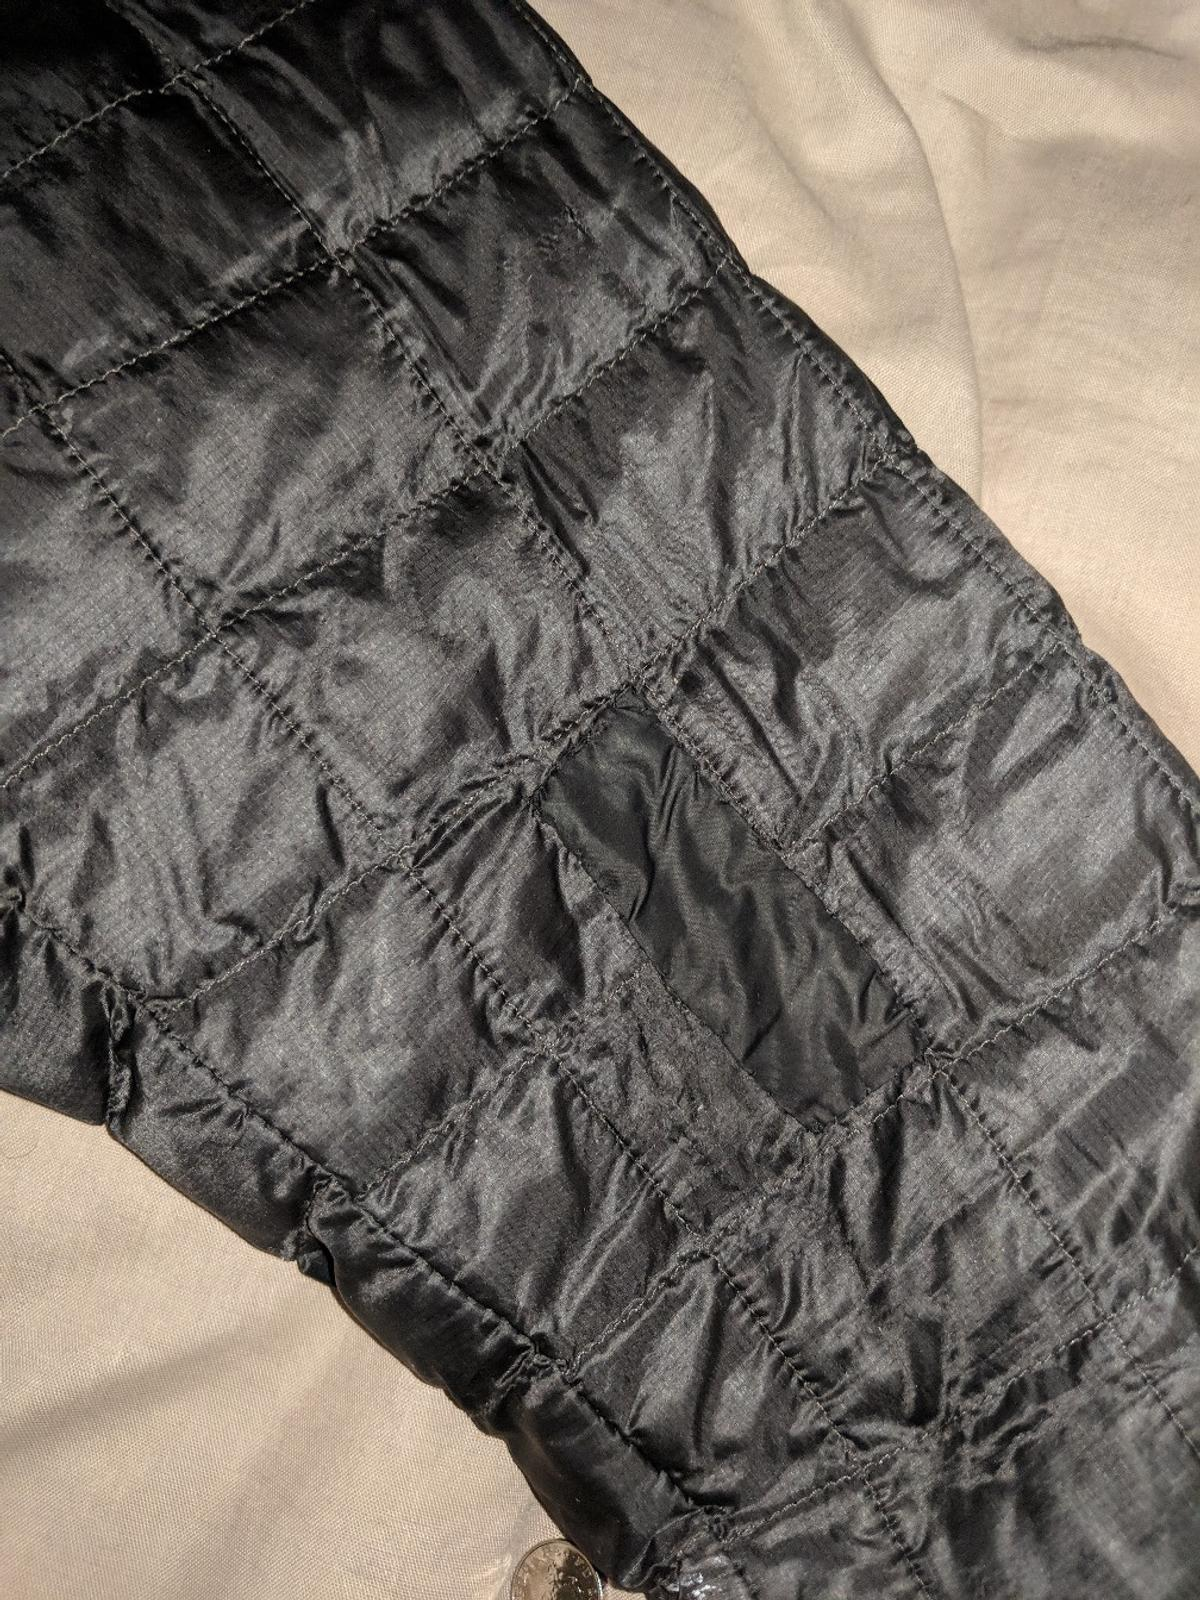 37935388d north face nano puff coat in TN2 Wells for £40.00 for sale - Shpock